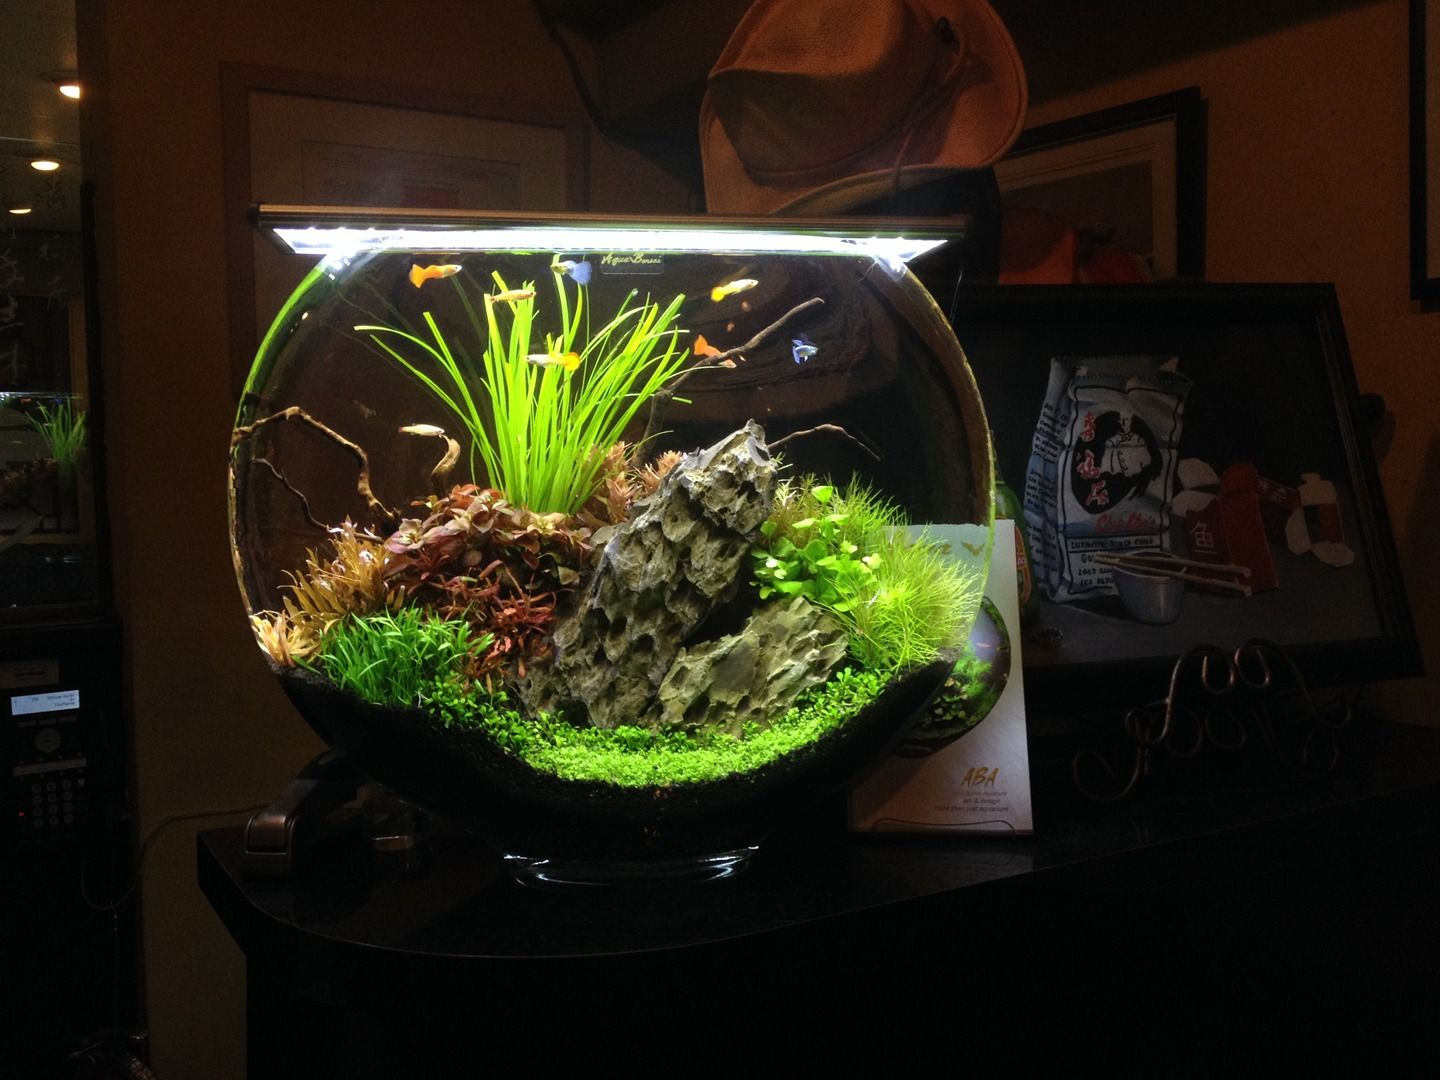 36 best aquarium images on Pinterest | Beautiful, Plants and DIY